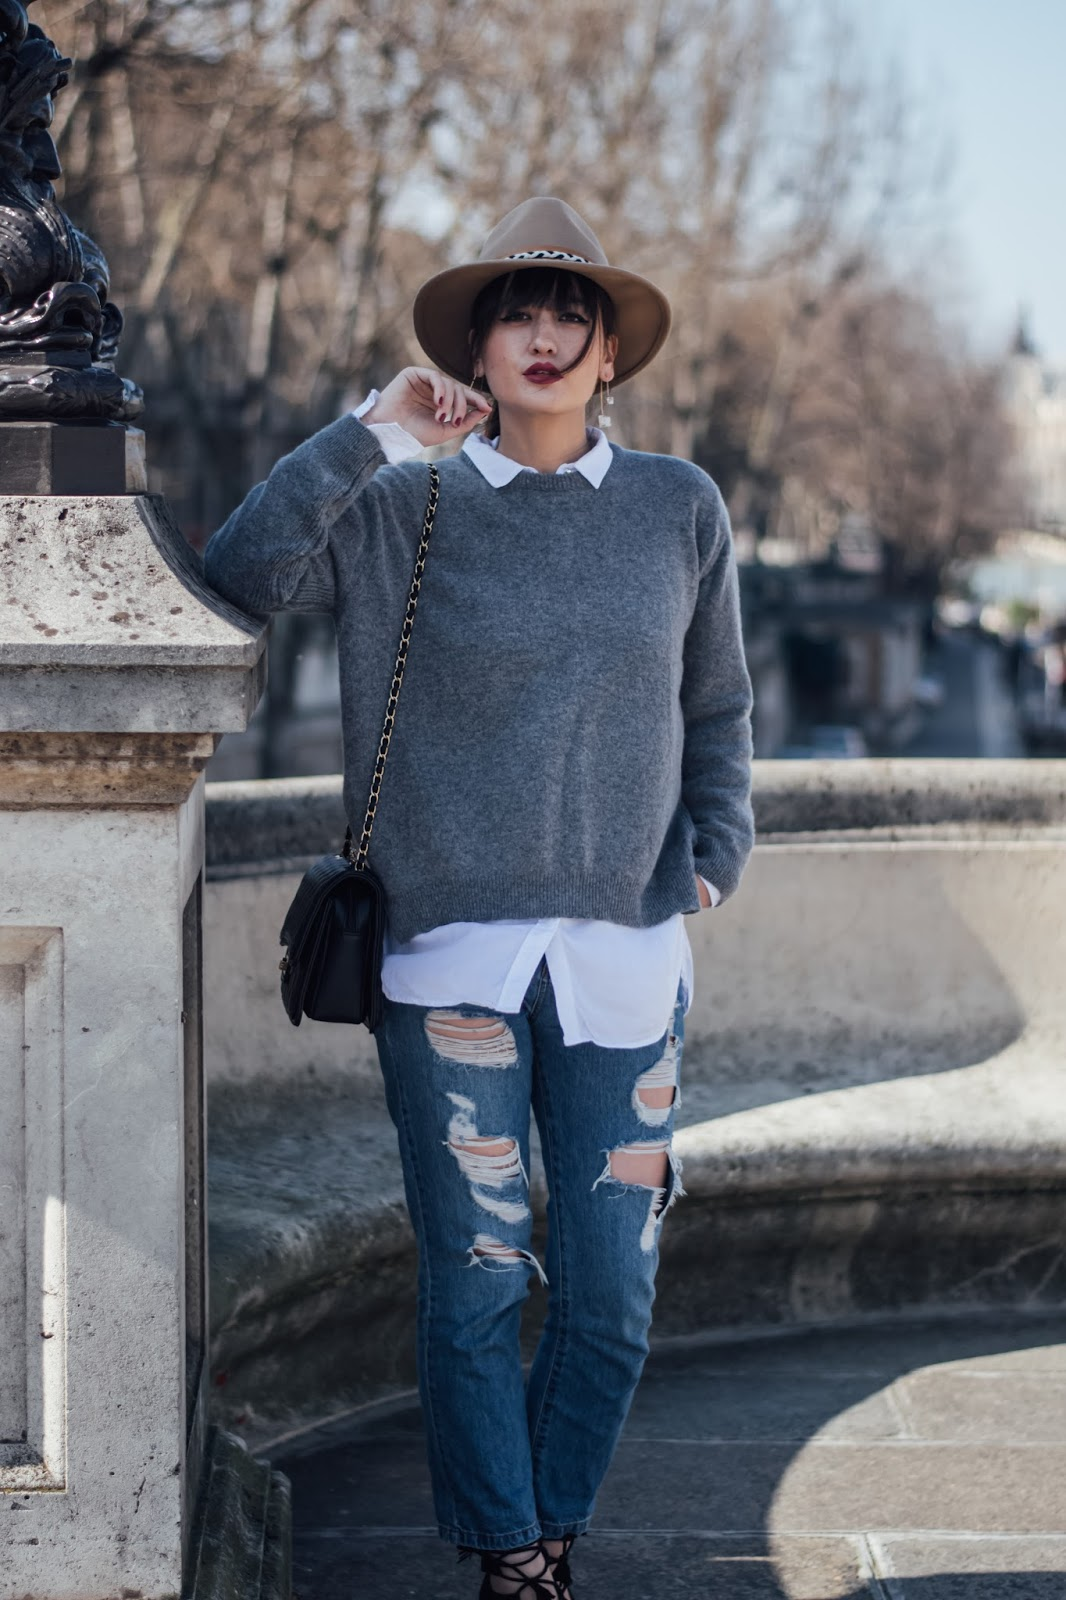 meet me in paree, blogger, style, paris, look, fashion, streetstyle